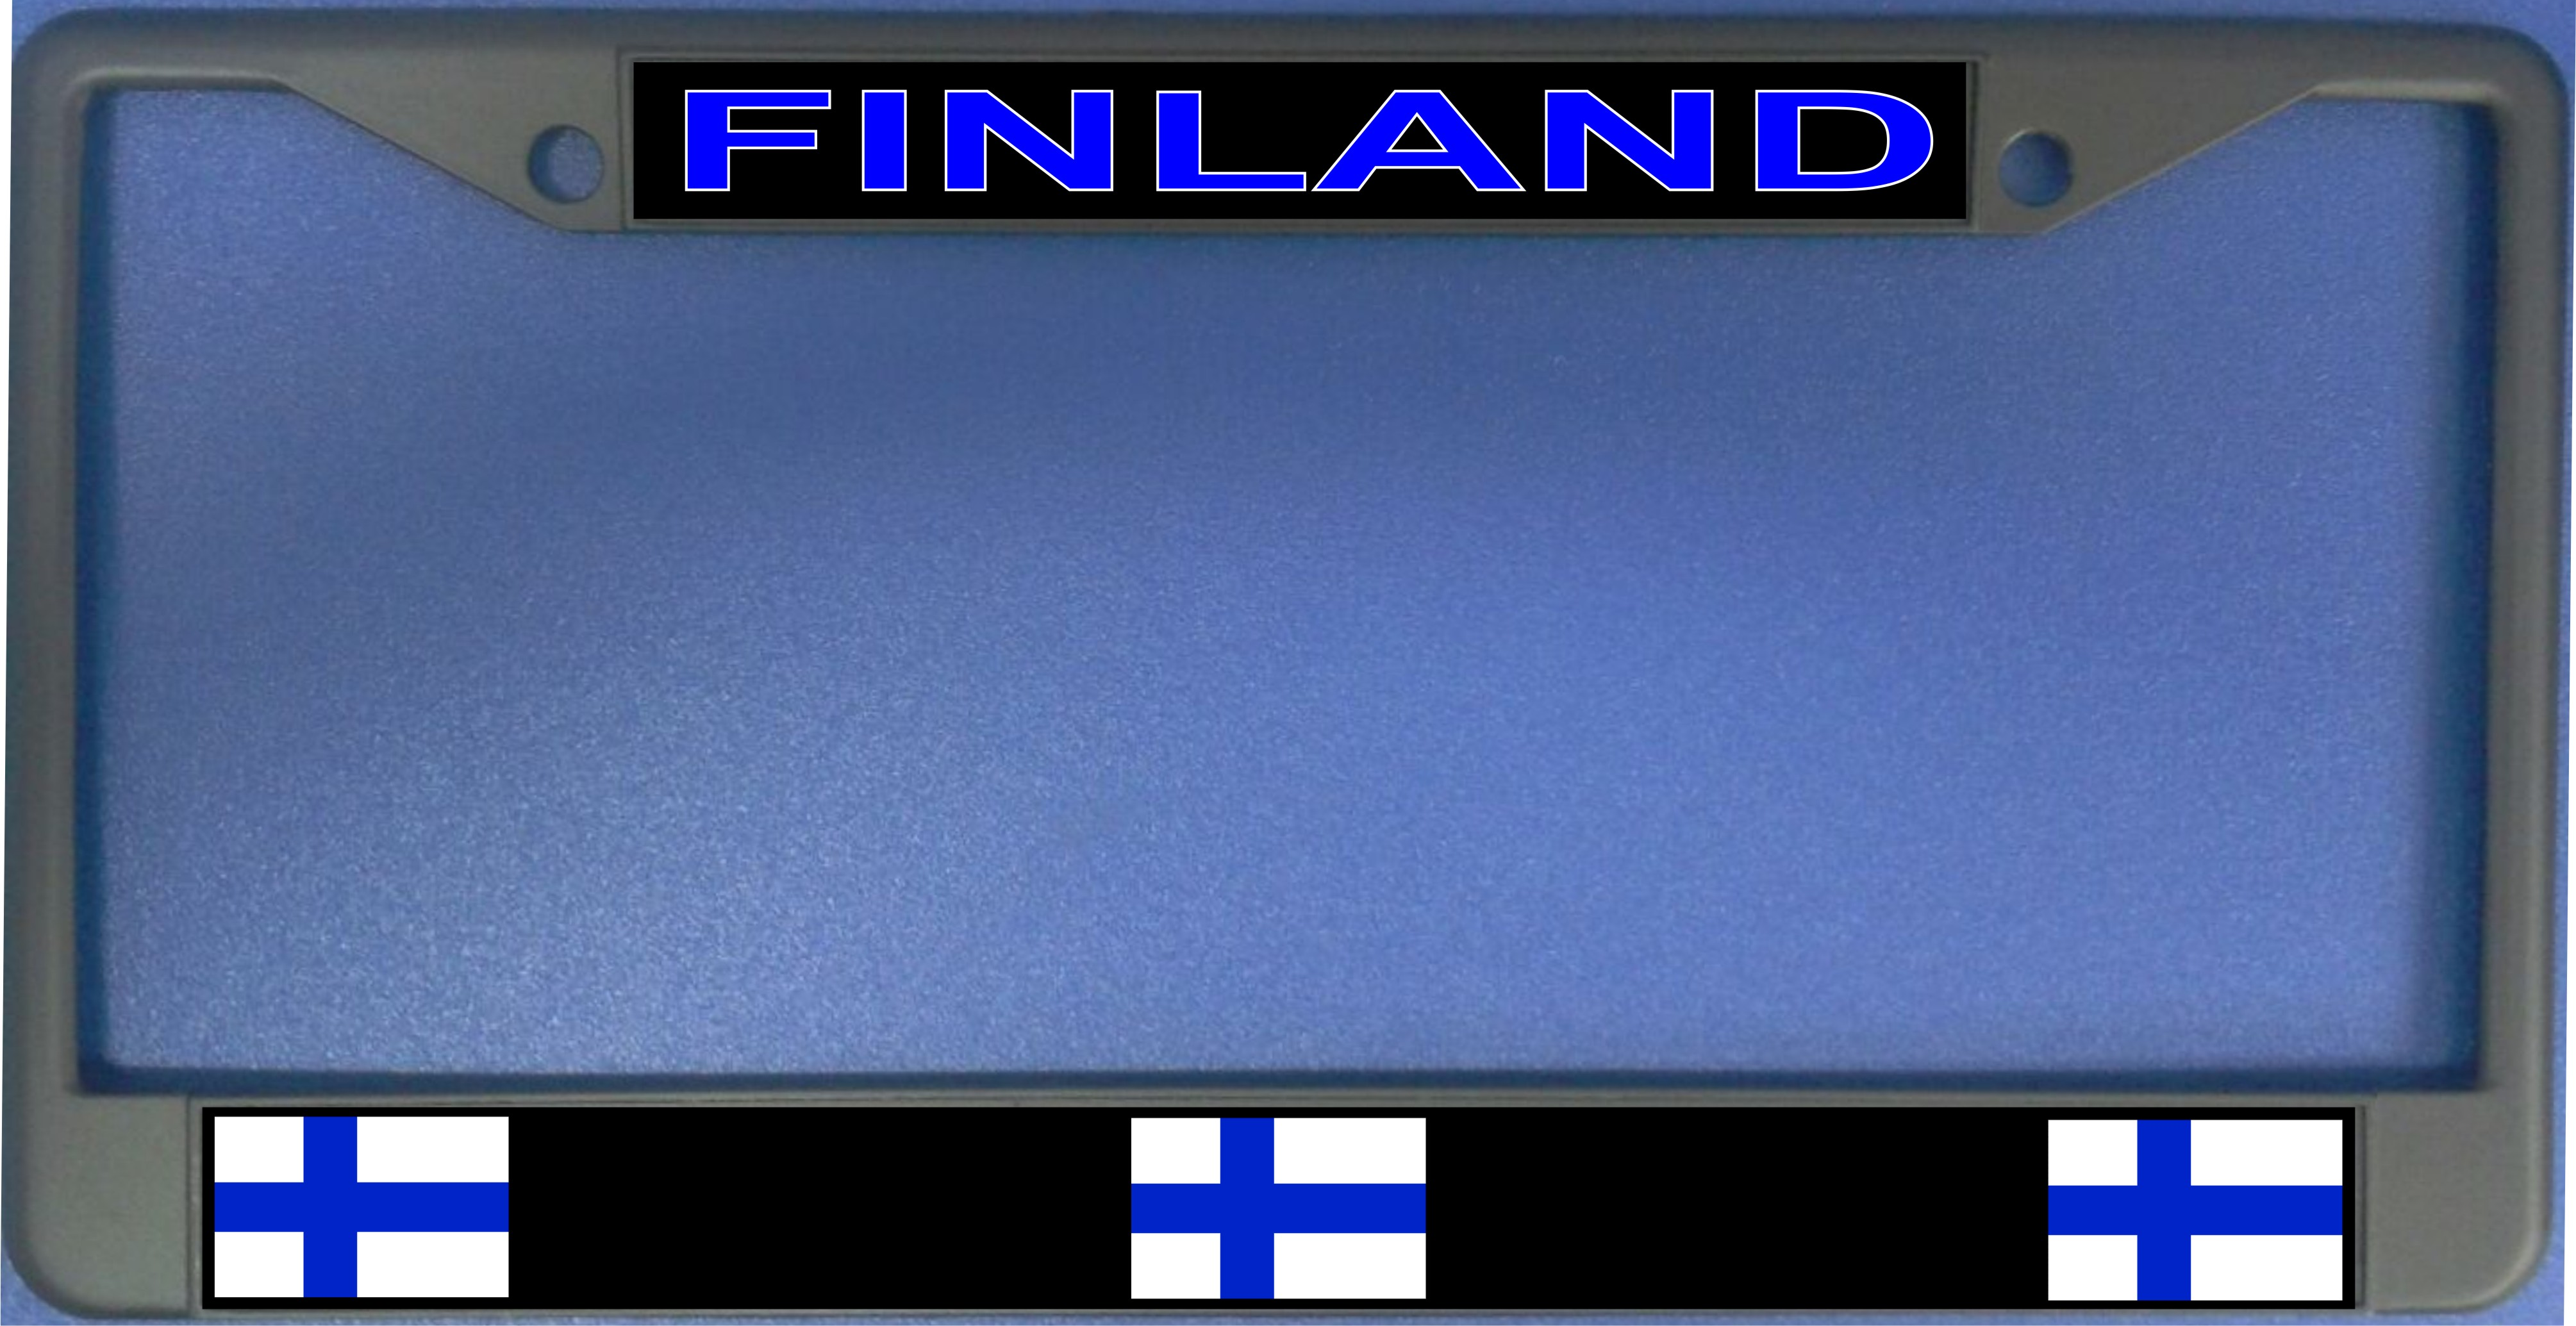 Finland FLAG Photo License Plate Frame  Free Personalization on this Plate